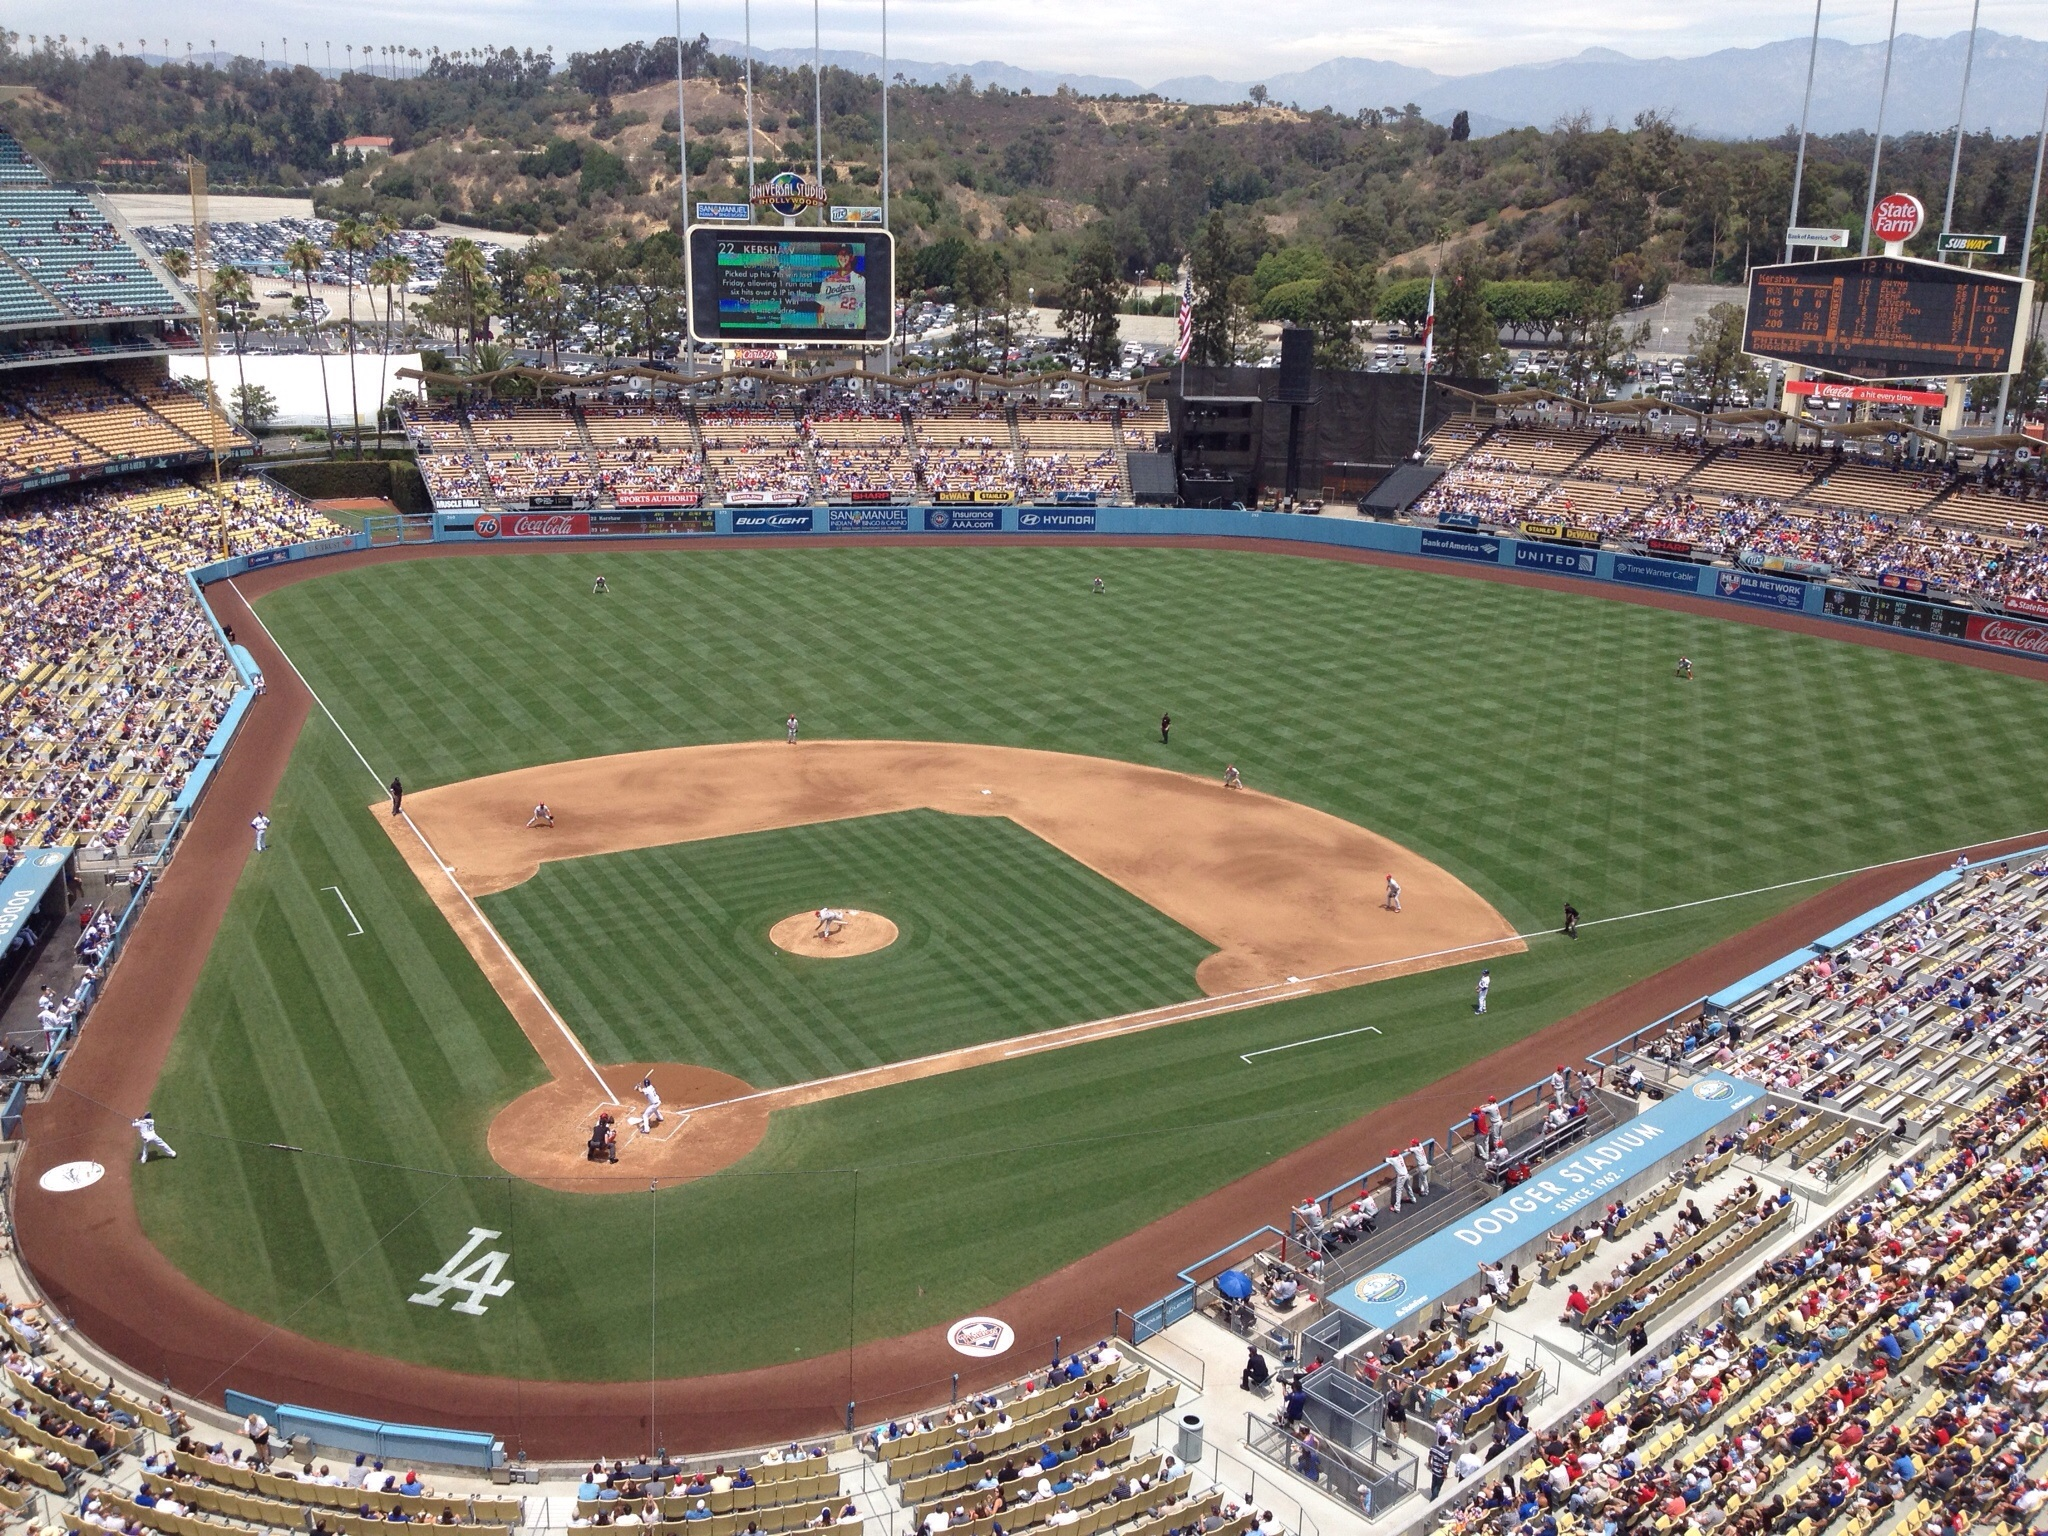 Home of the Dodgers. A little bigger than the Lancaster JetHawks' stadium, but the atmosphere is the same